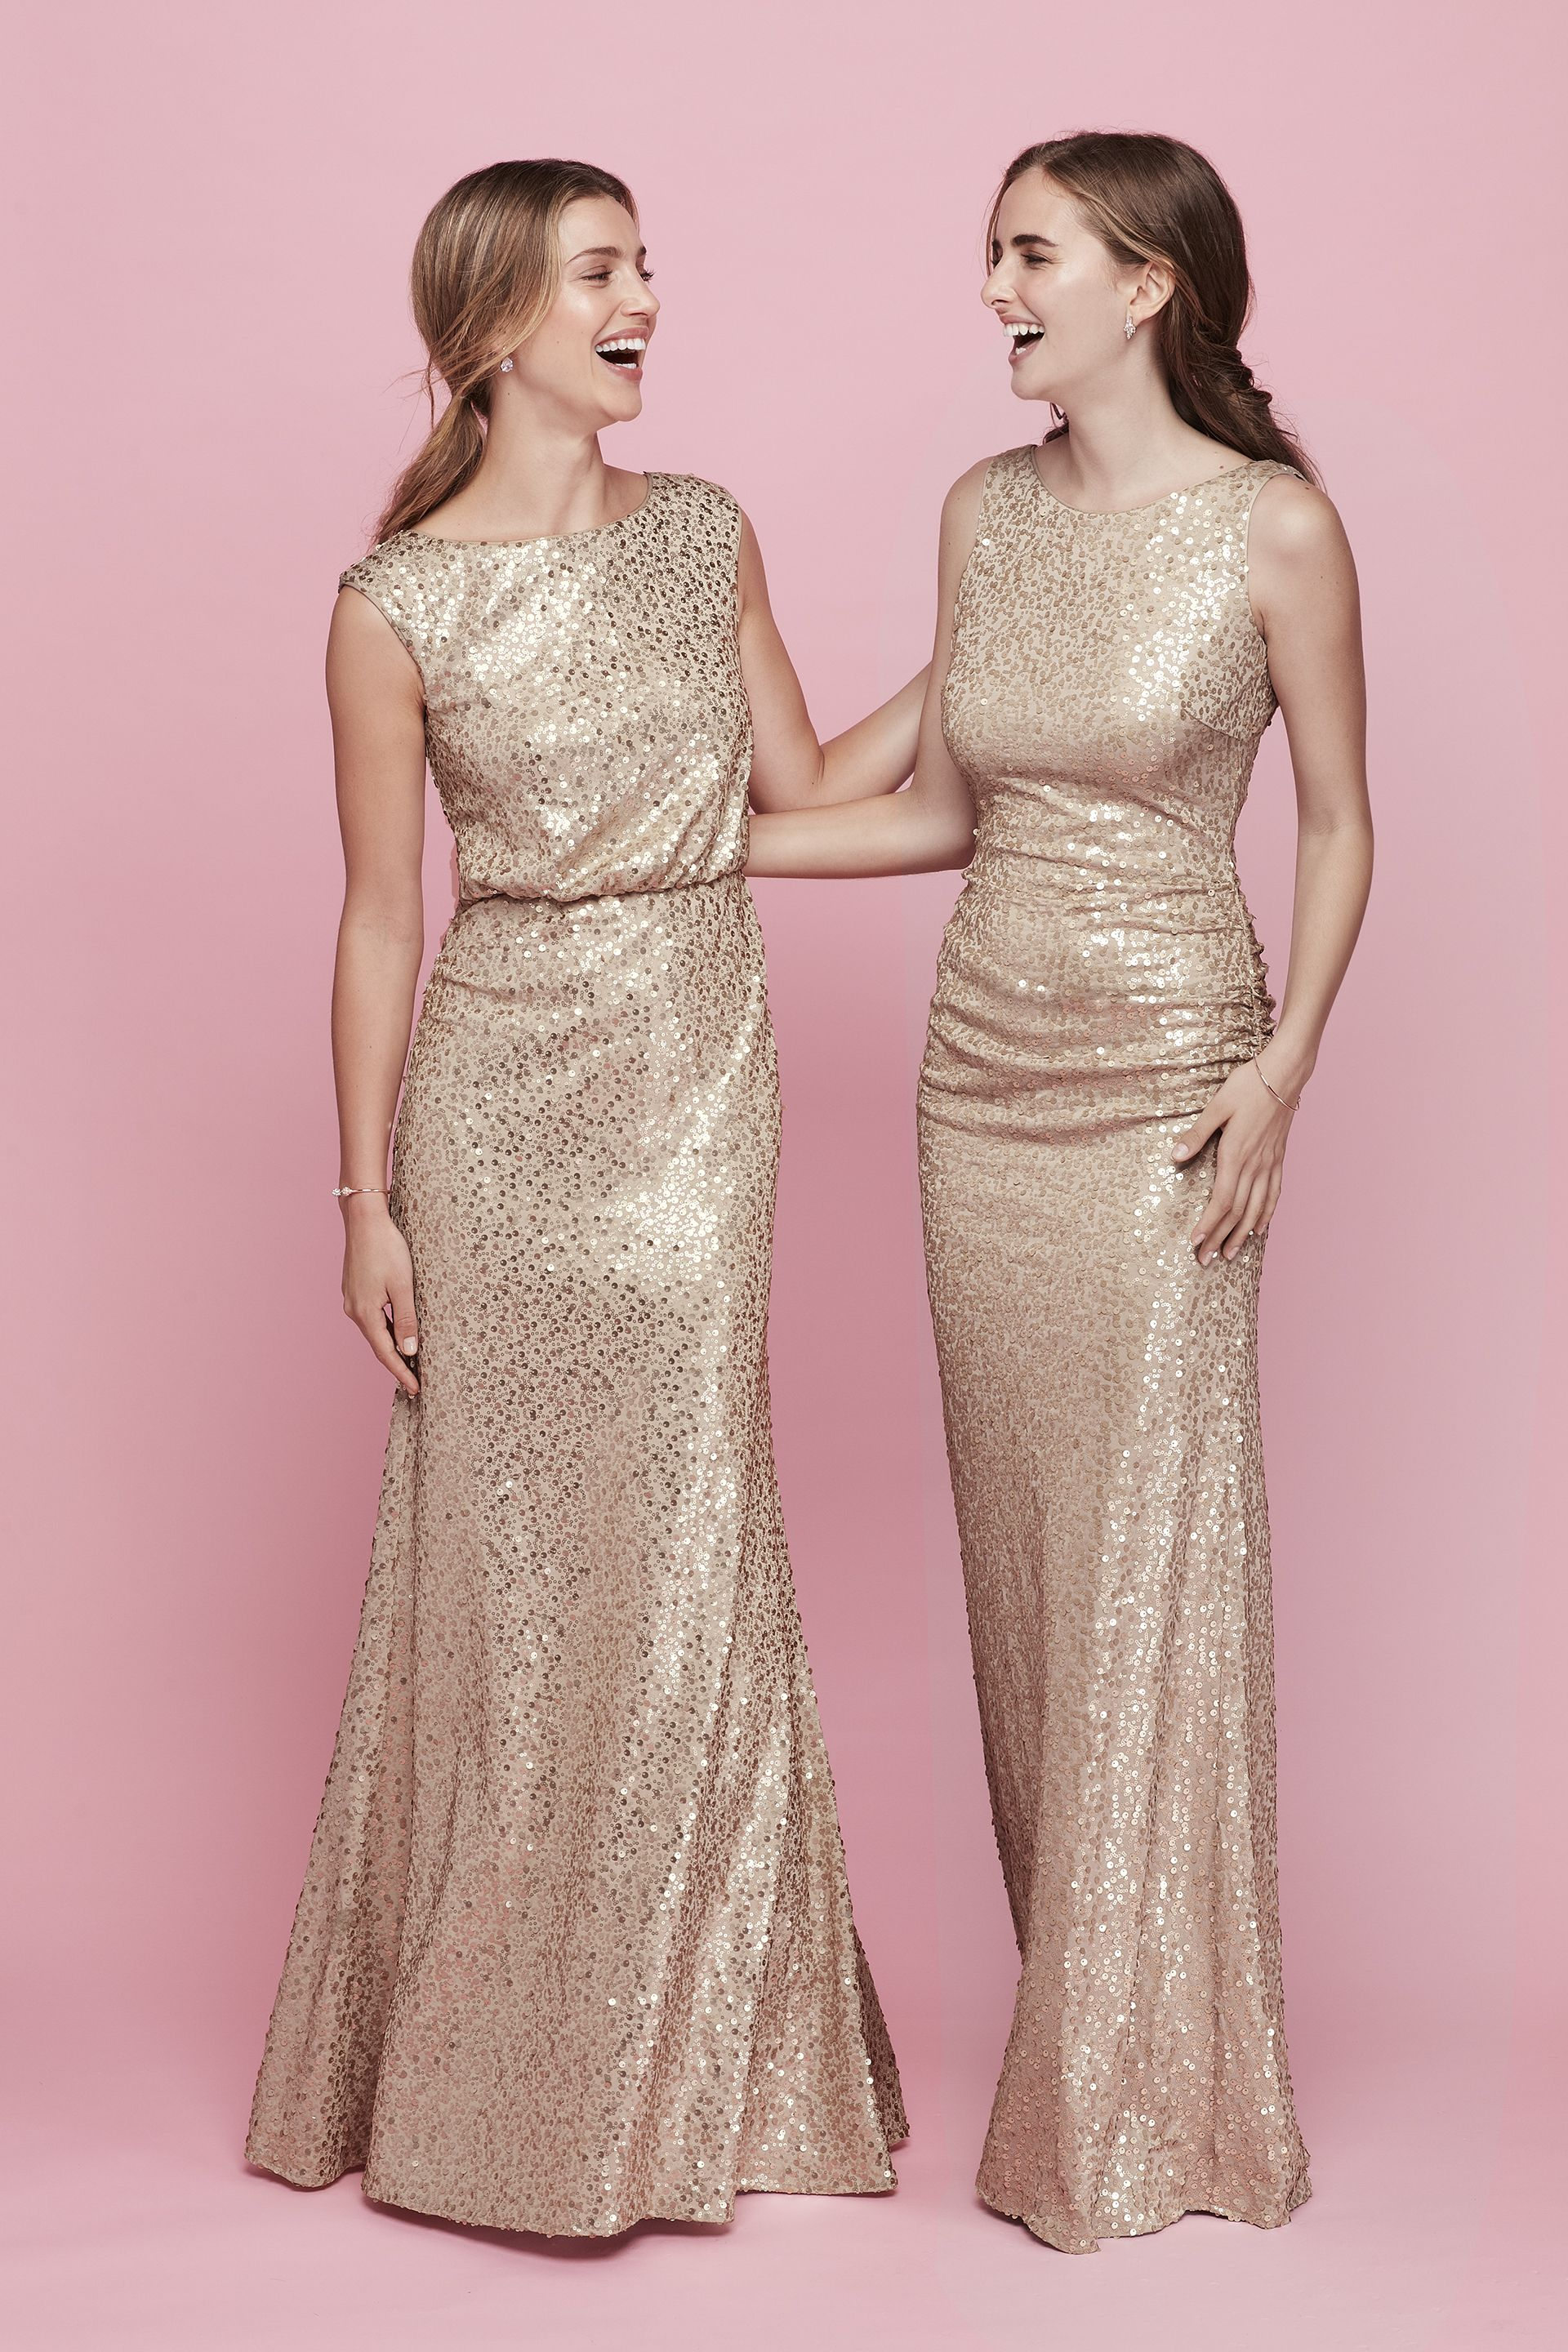 Sparkly bridesmaid dresses, glittery dresses | Bridesmaids | Pinterest